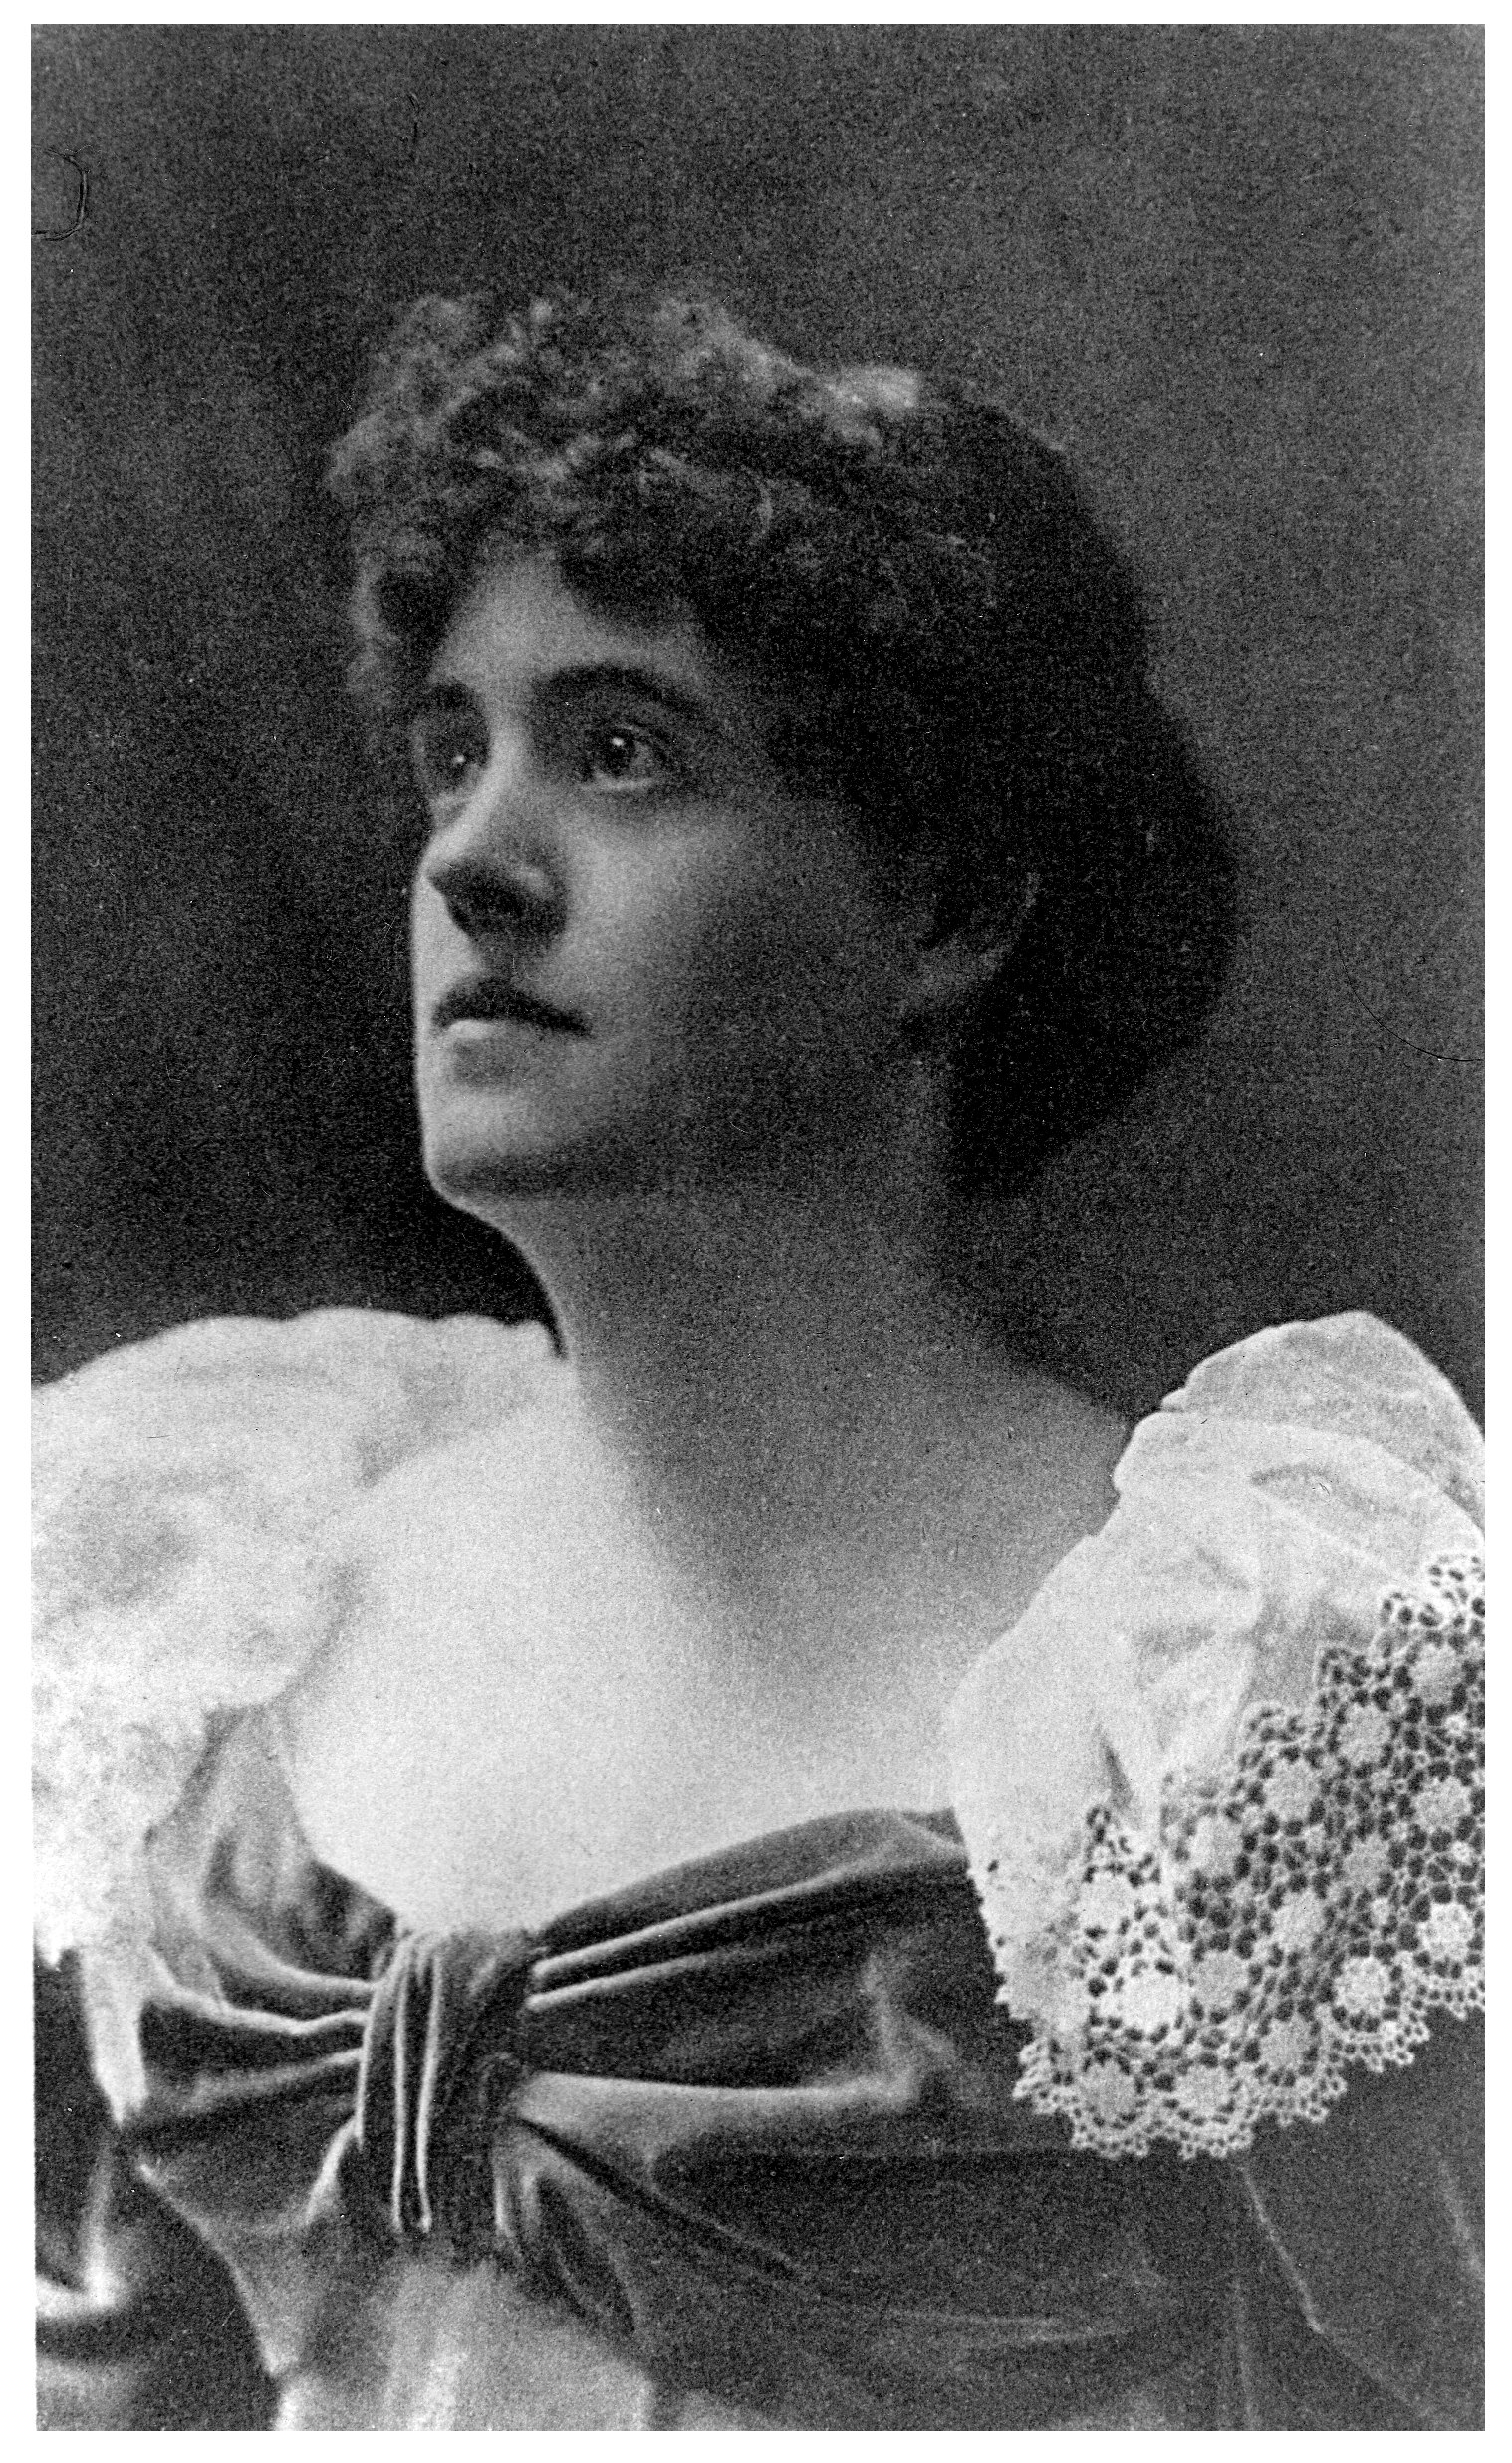 Image is a photograph of Graham Tomson [Rosamund Marriott Watson] shown from the chest up. She is in ¾ face, looking towards the upper left corner of the image. She has curly hair that is worn short. She is wearing a dress with a low neckline; the fabric gathers in a bow in the middle of her chest. The dress has long sleeves accentuated with white lace shoulders. The background is open and dark-coloured. The image is vertically displayed.